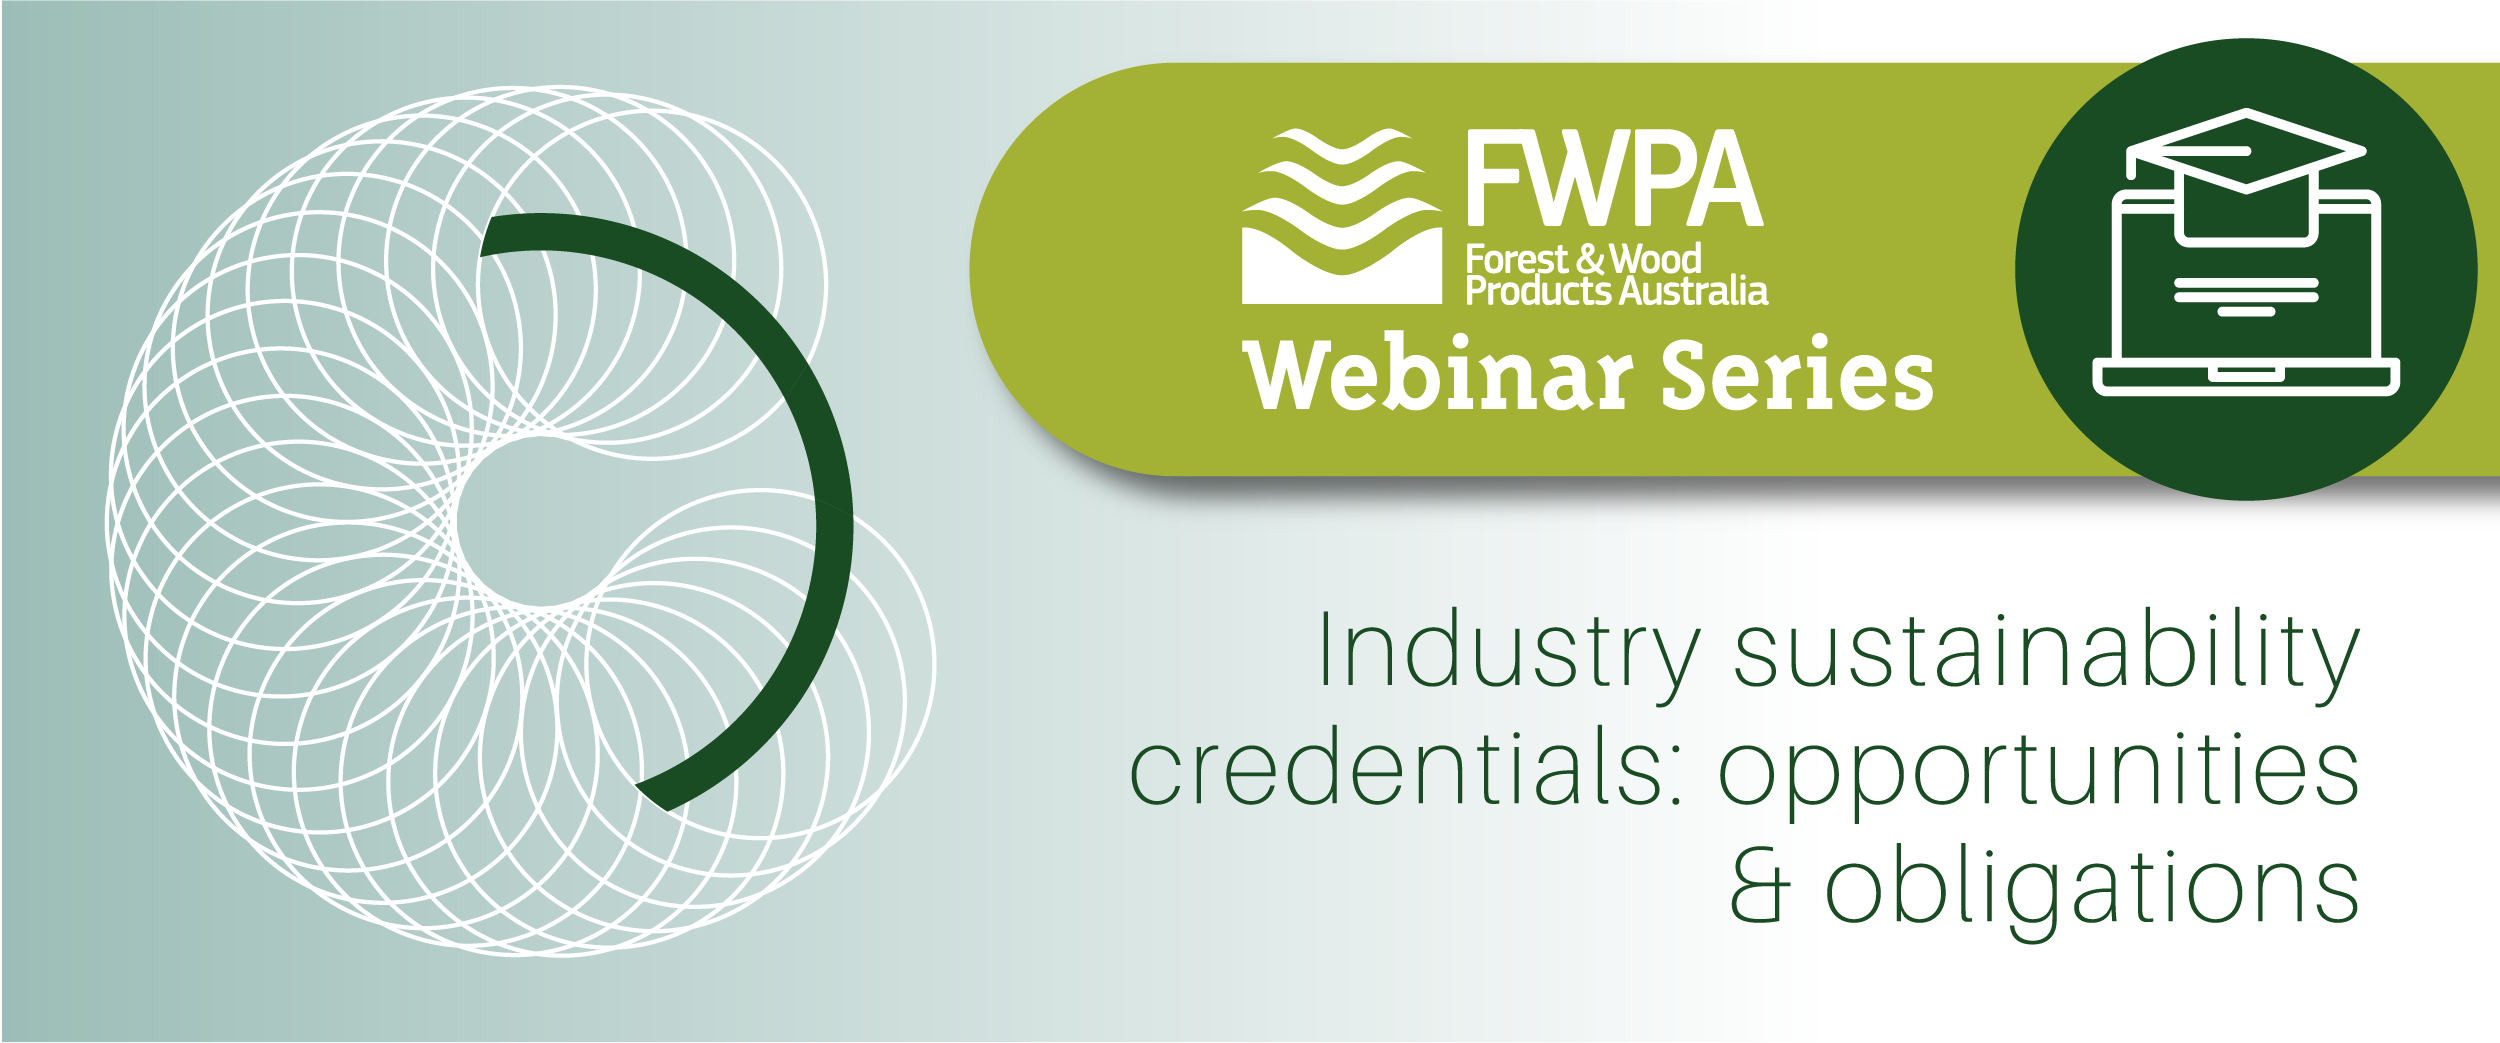 FWPA Webinar Series: Industry Sustainability Credentials - Opportunities & Obligations